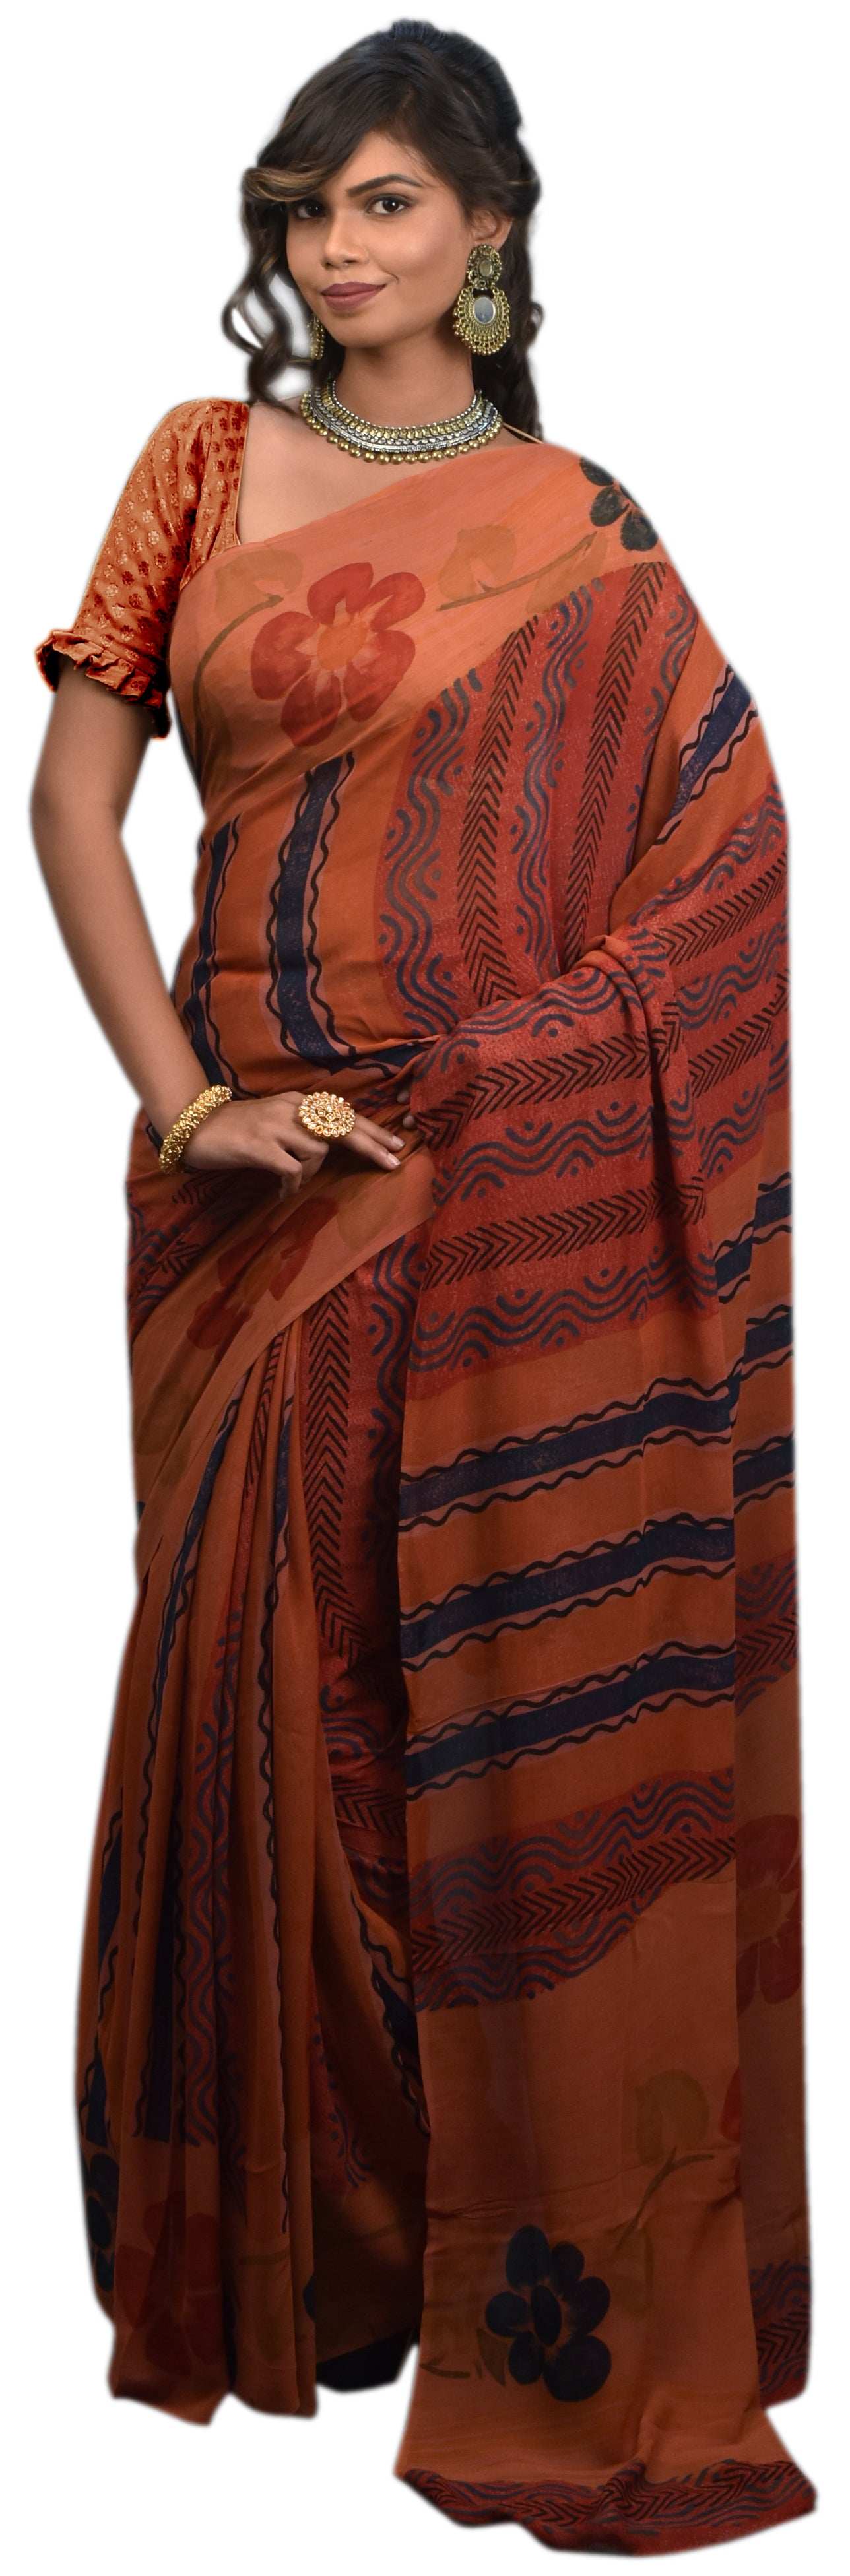 Multicolor Designer Wedding Partywear Pure Crepe Hand Brush Reprinted Kolkata Saree Sari RP202